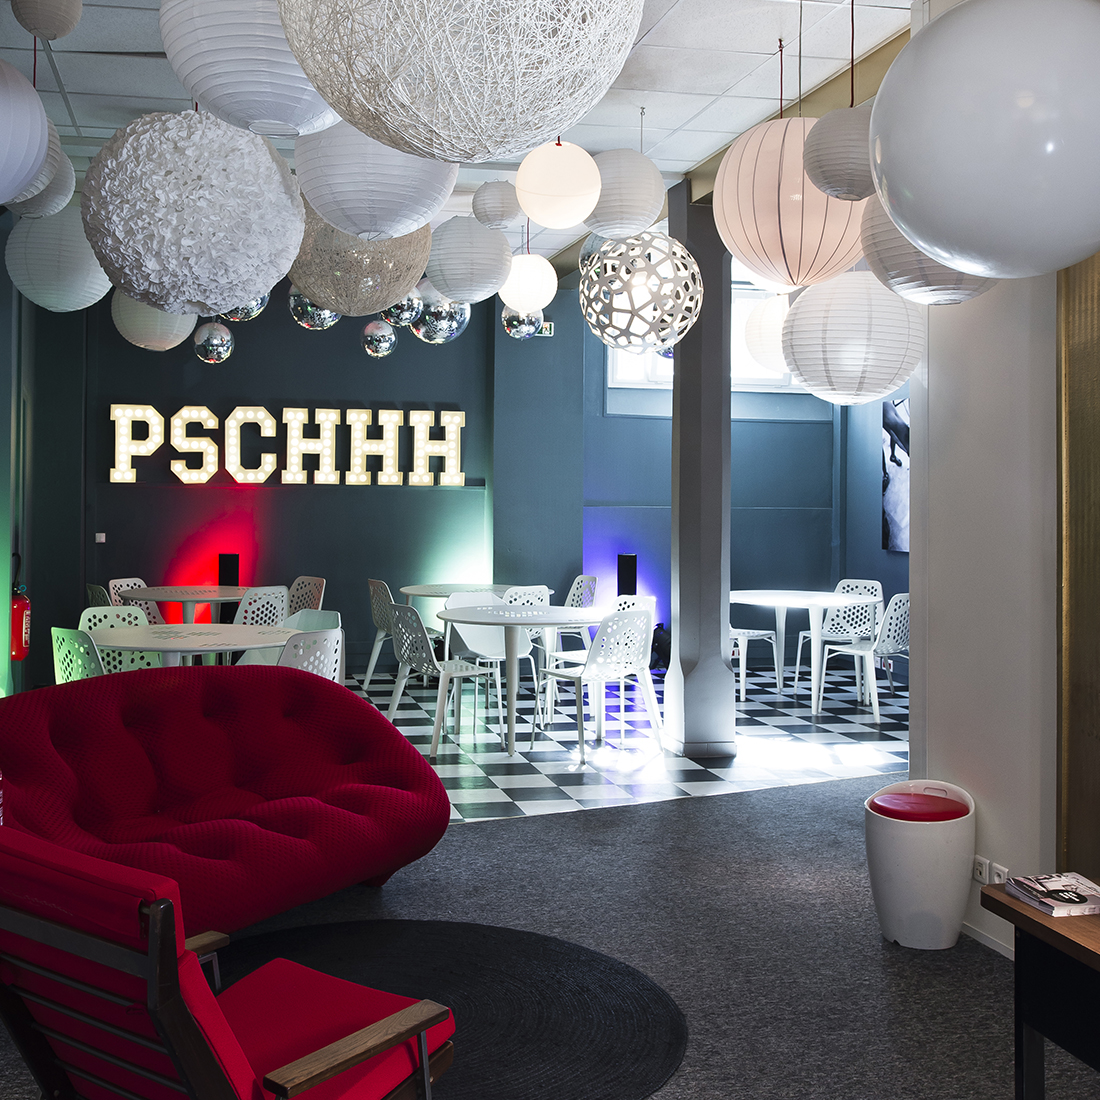 pschhh-paris-agence-publicite-communication-marketing-bureaux-offices-9